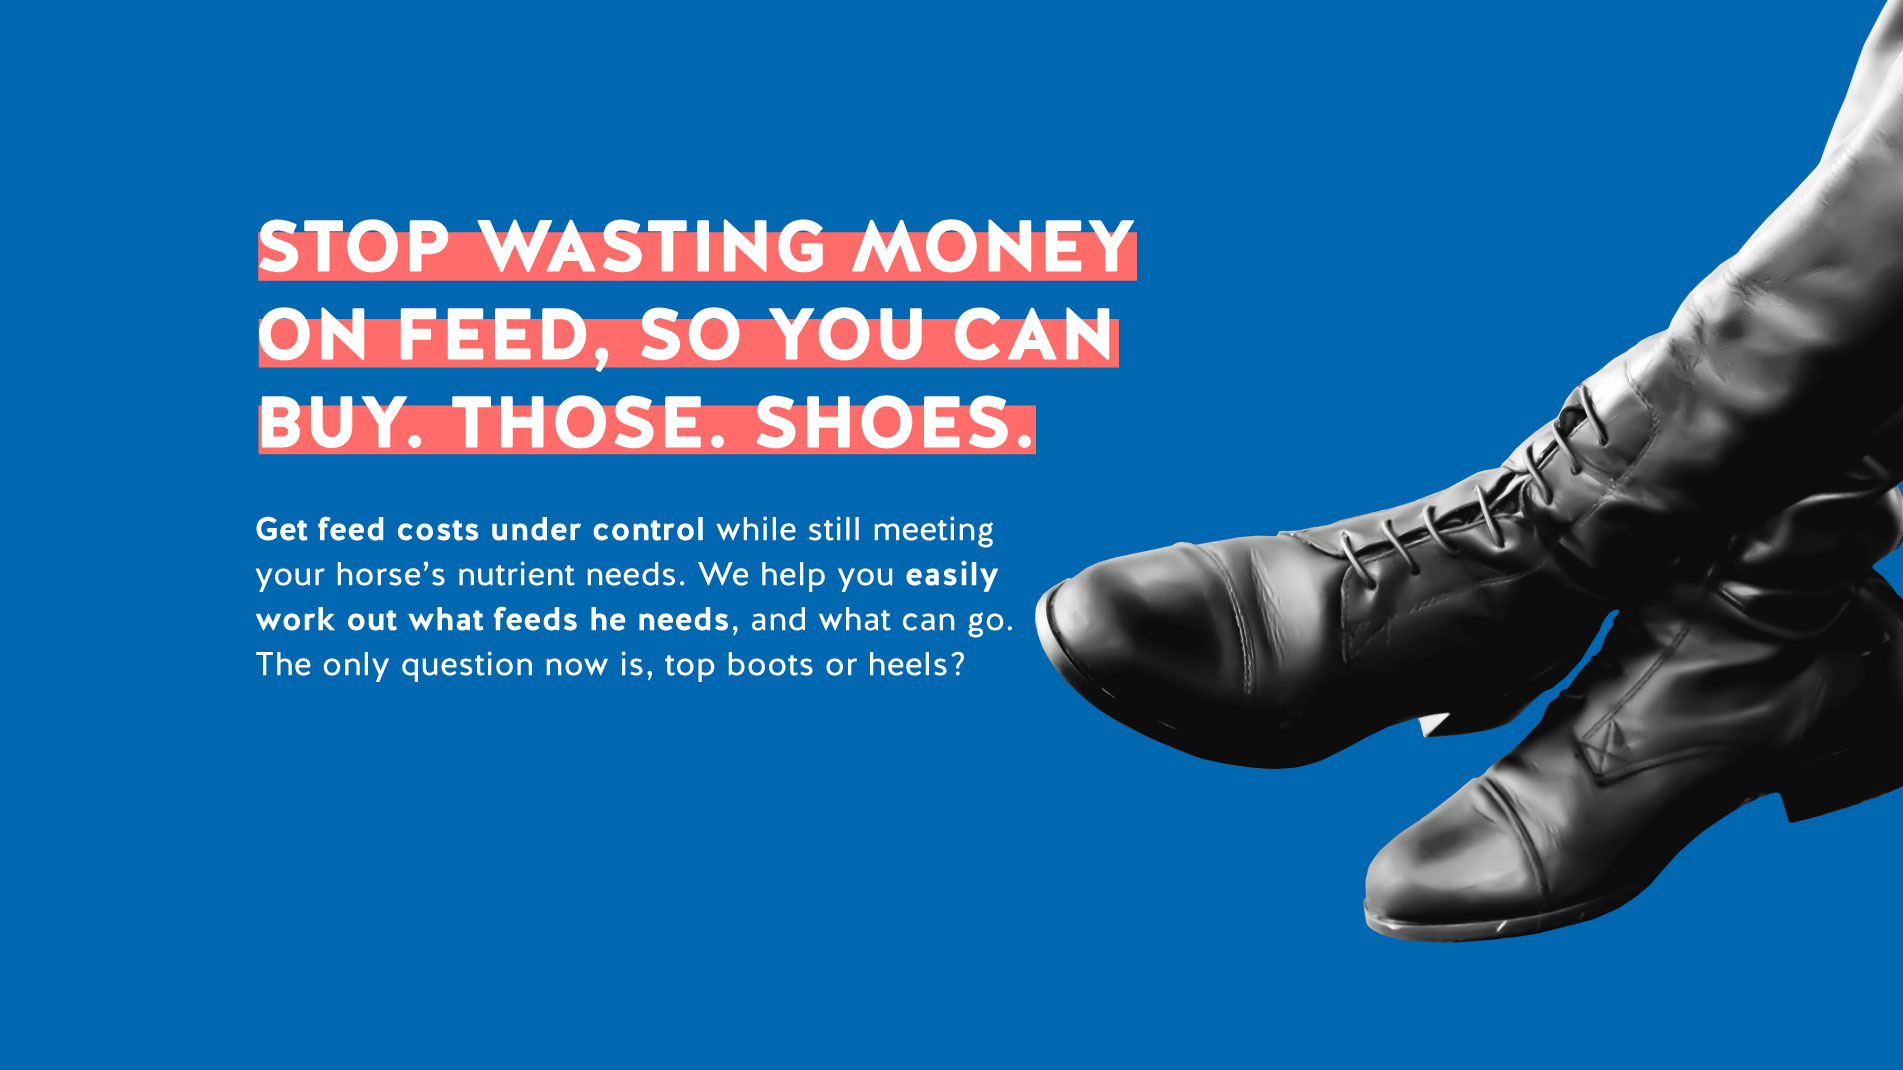 FeedXL promotion showing black leather riding boots.